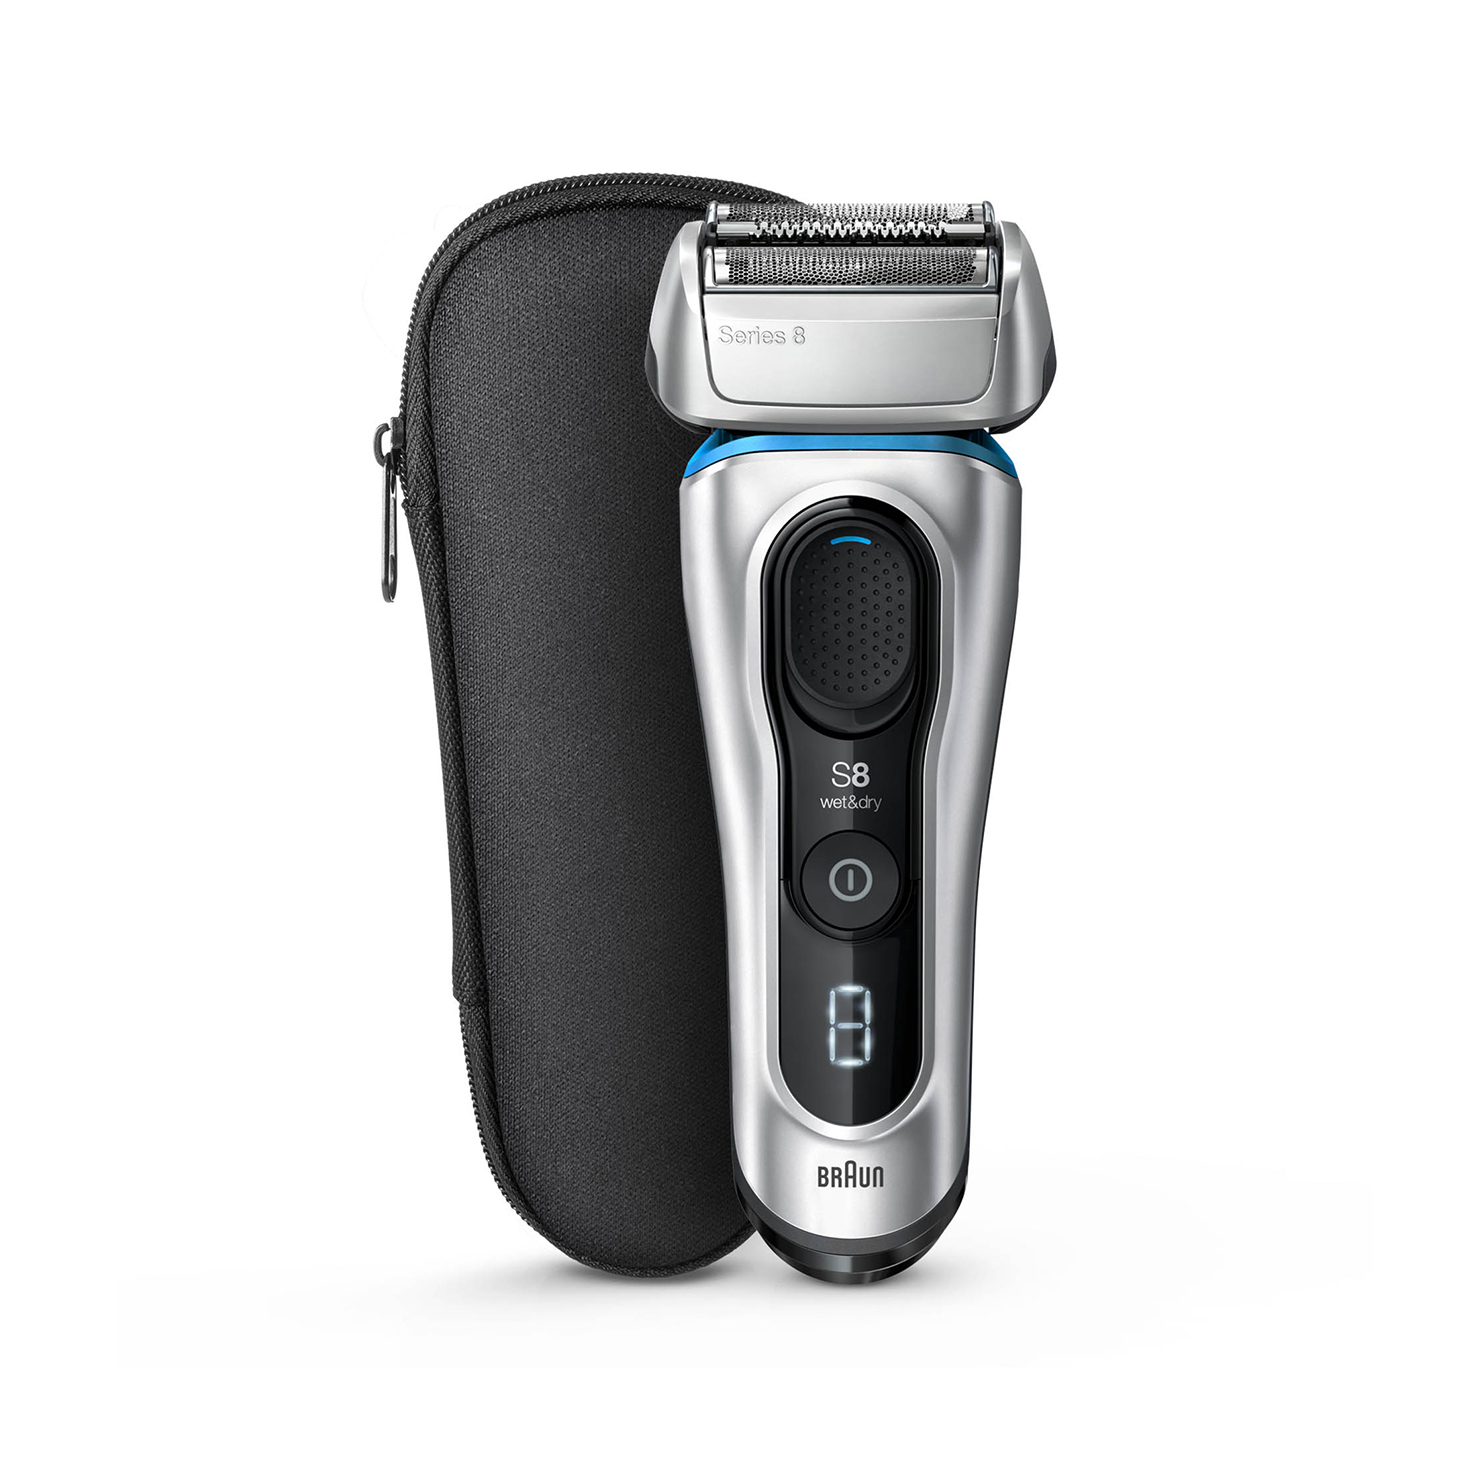 Series 8 8330s shaver